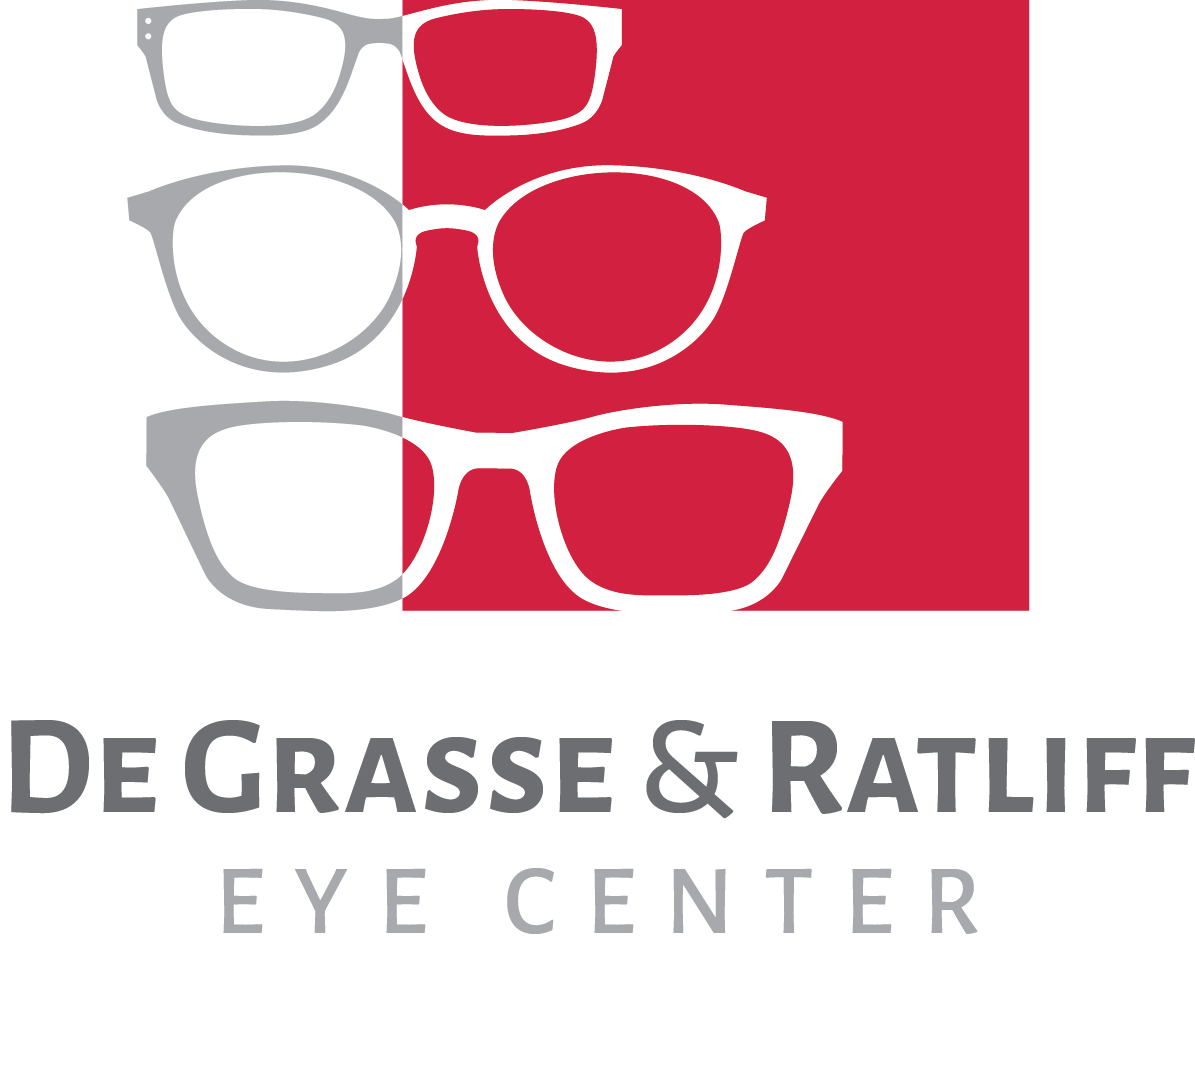 De Grasse & Ratliff Eye Center Logo